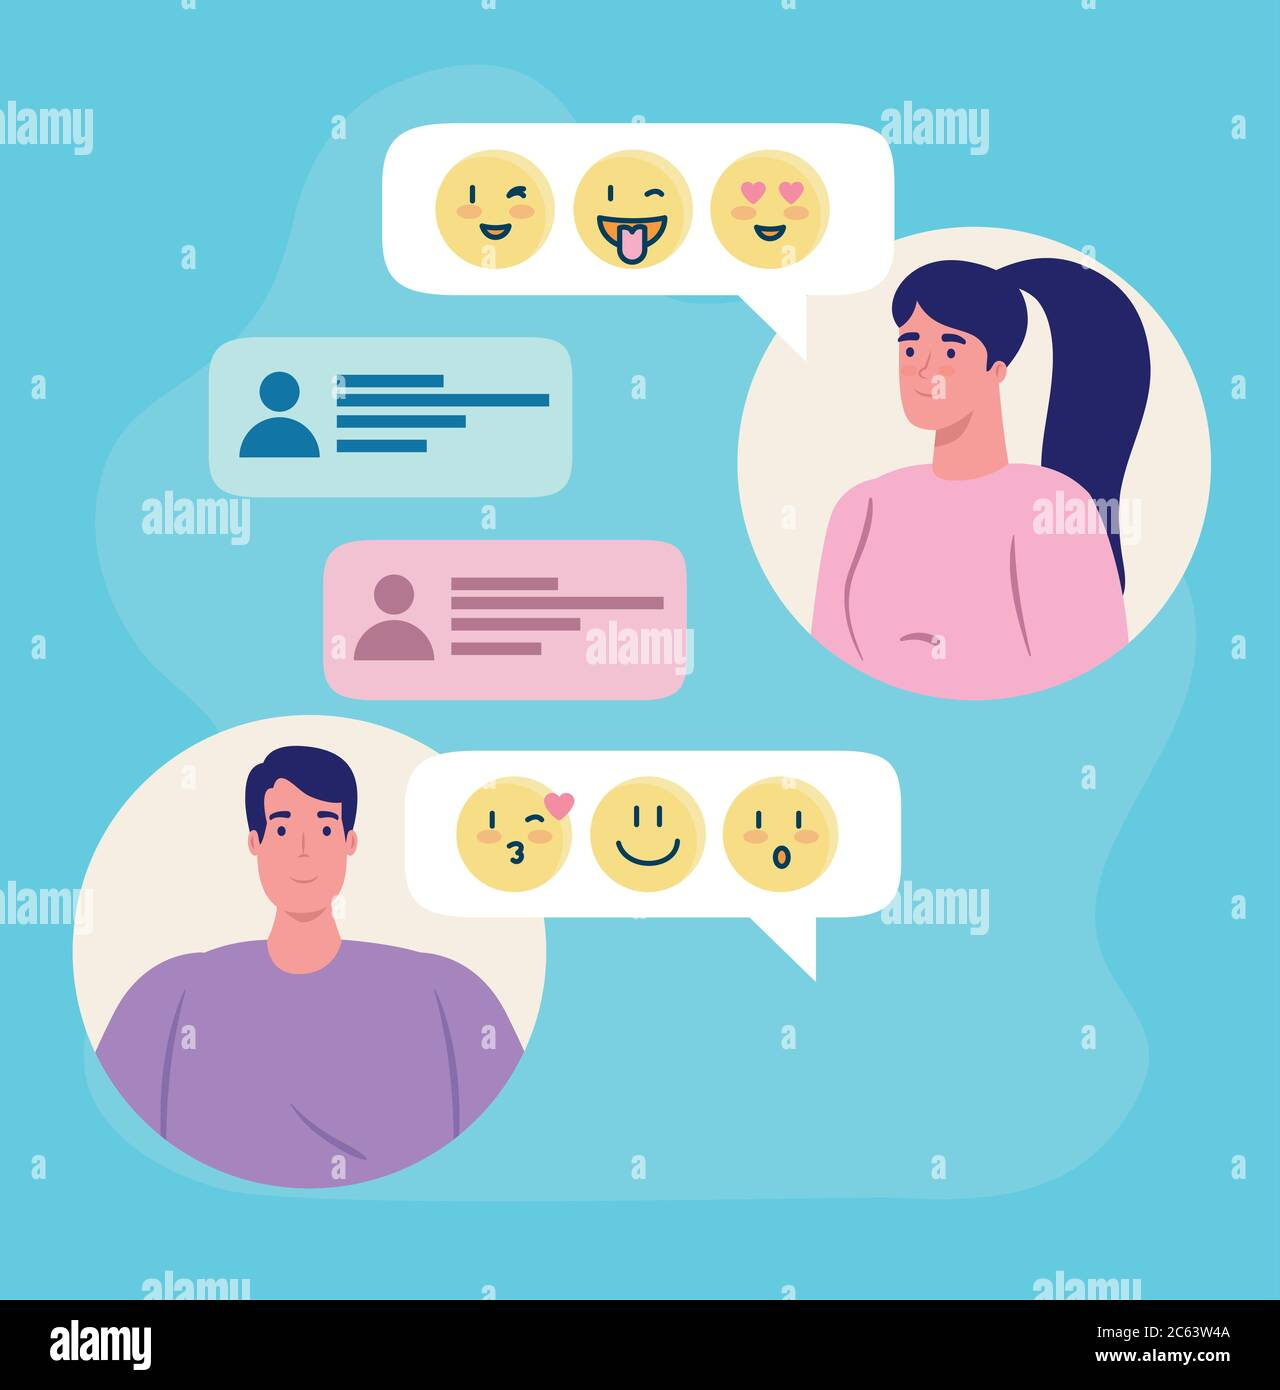 online dating service application, chat of woman and man with emojis, modern people looking for couple, social media, virtual relationship Stock Vector